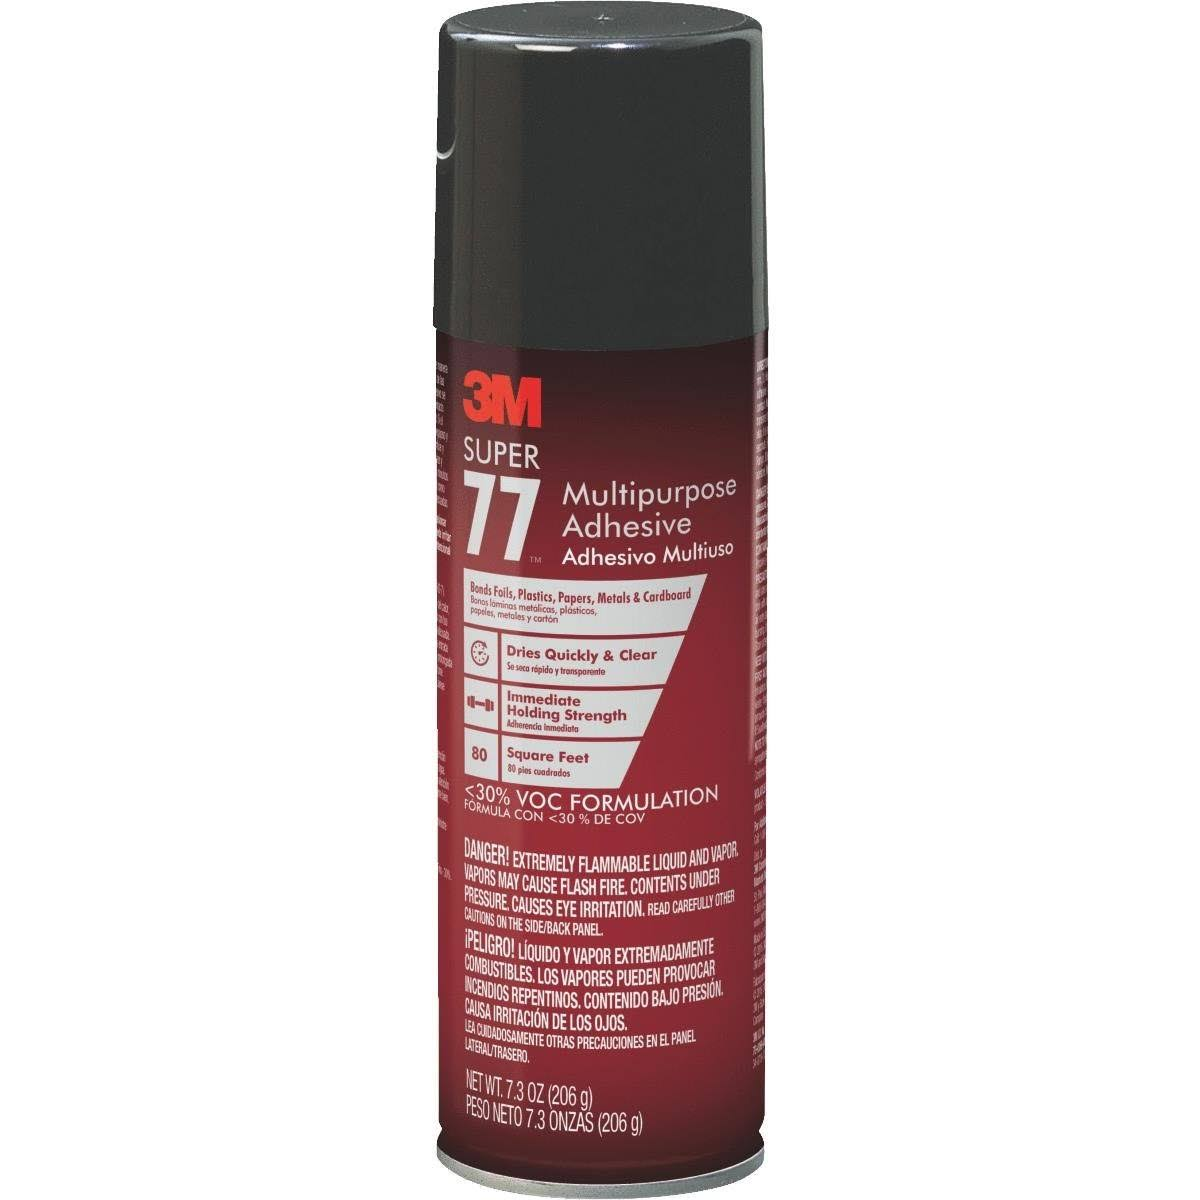 3M Super 77 Multupurpose Adhesive Spray - 7oz